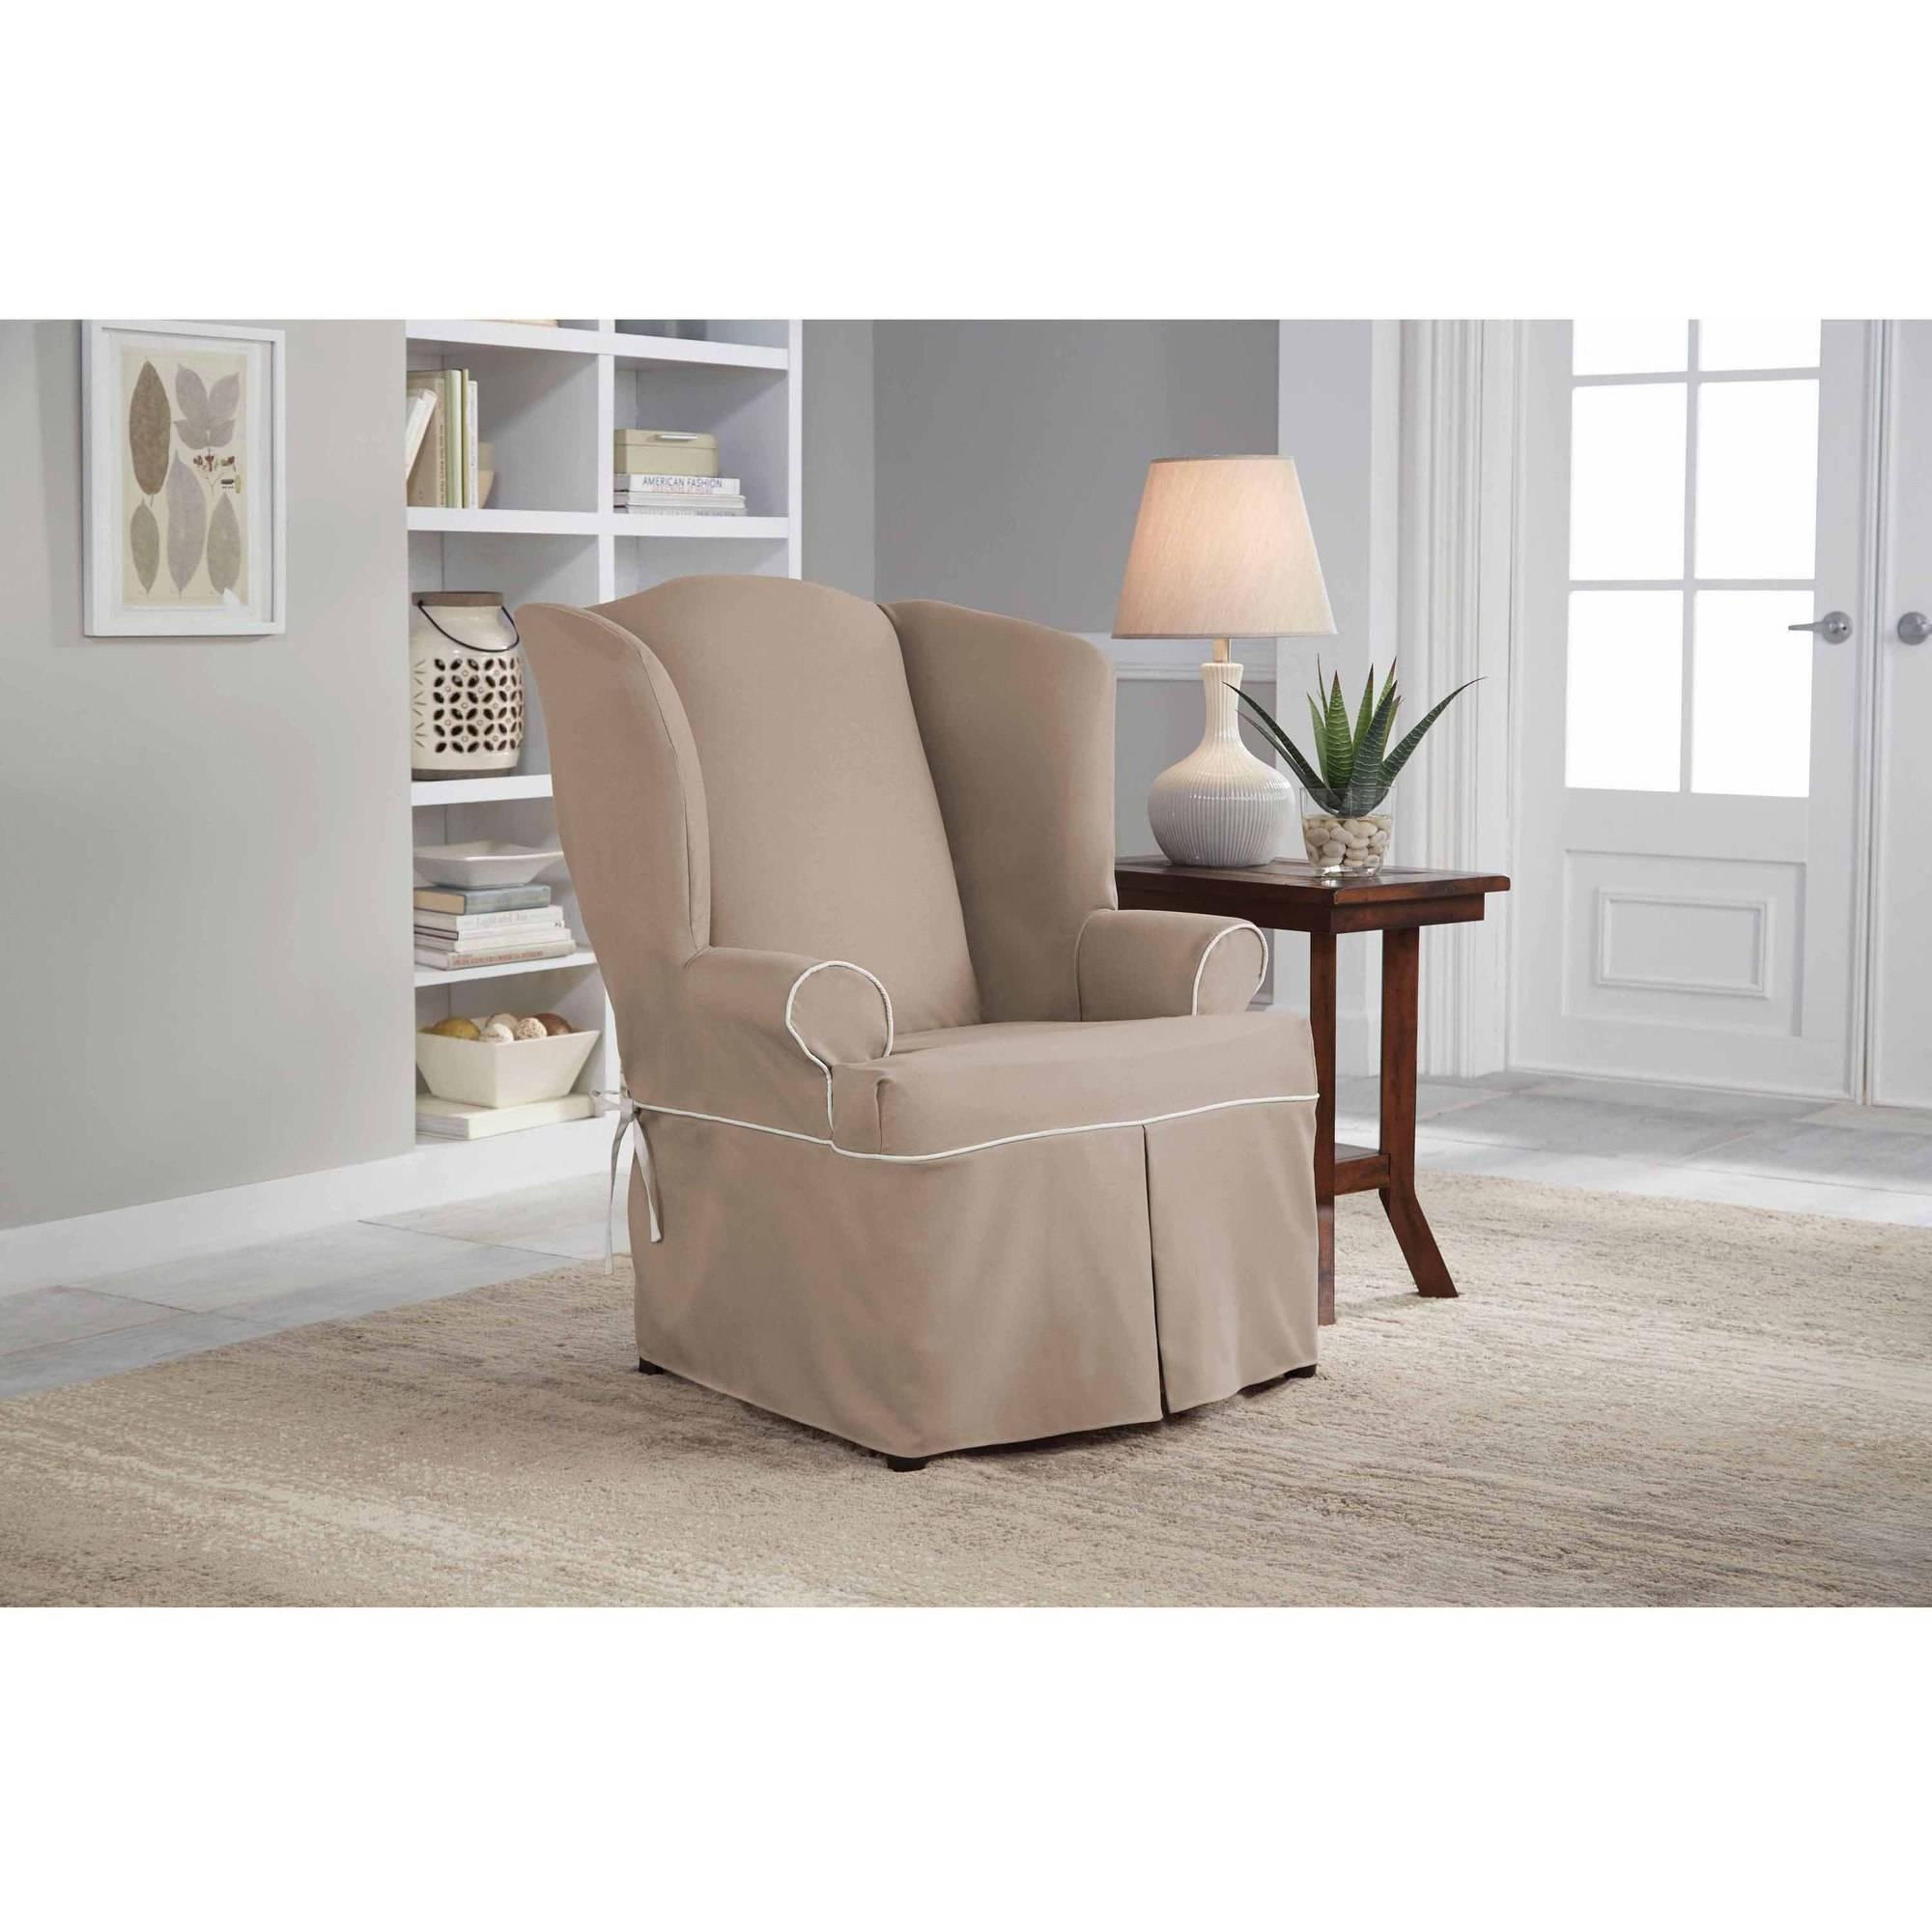 Chair King Furniture Covers